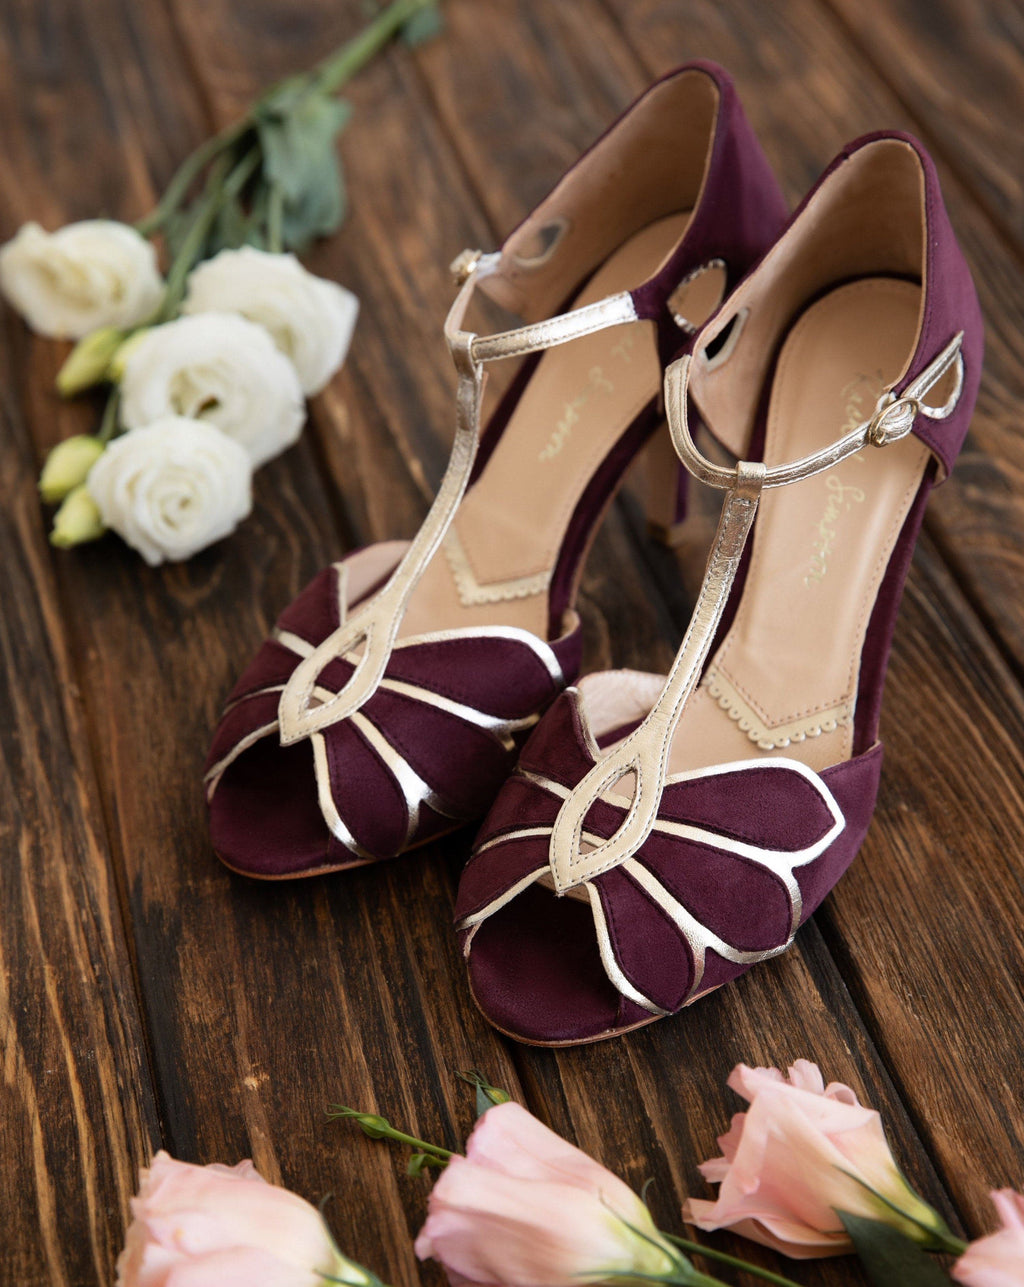 Mimosa Berry Ladies Shoes Rachel Simpson